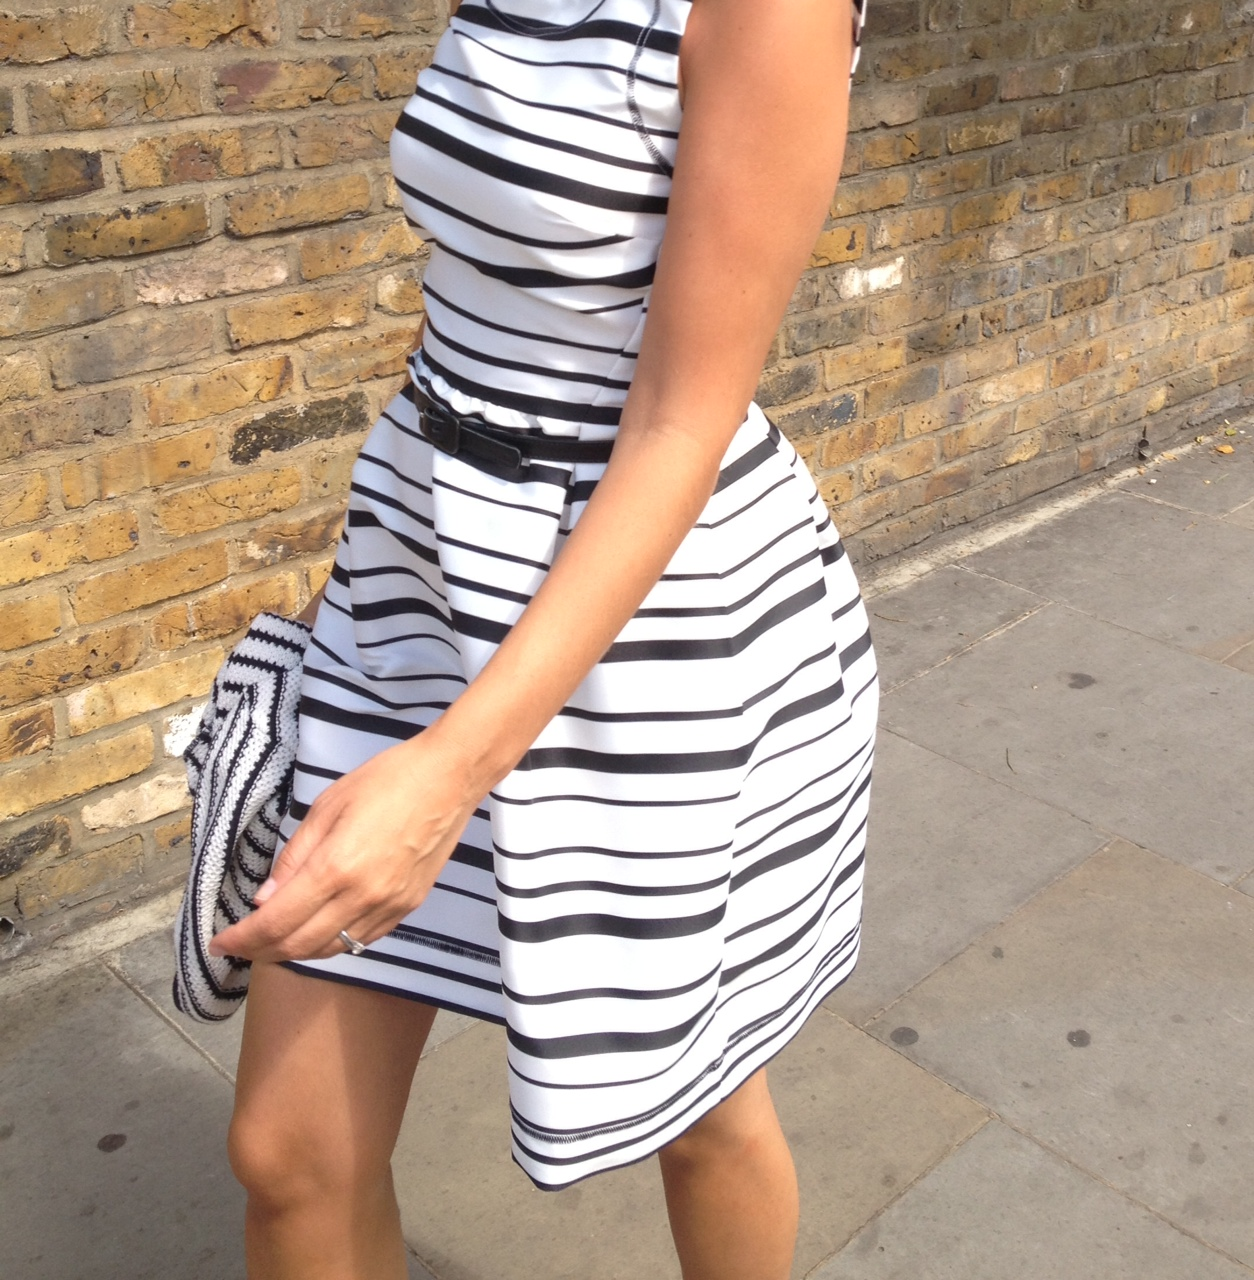 Streetstyle London in a black and white striped dress